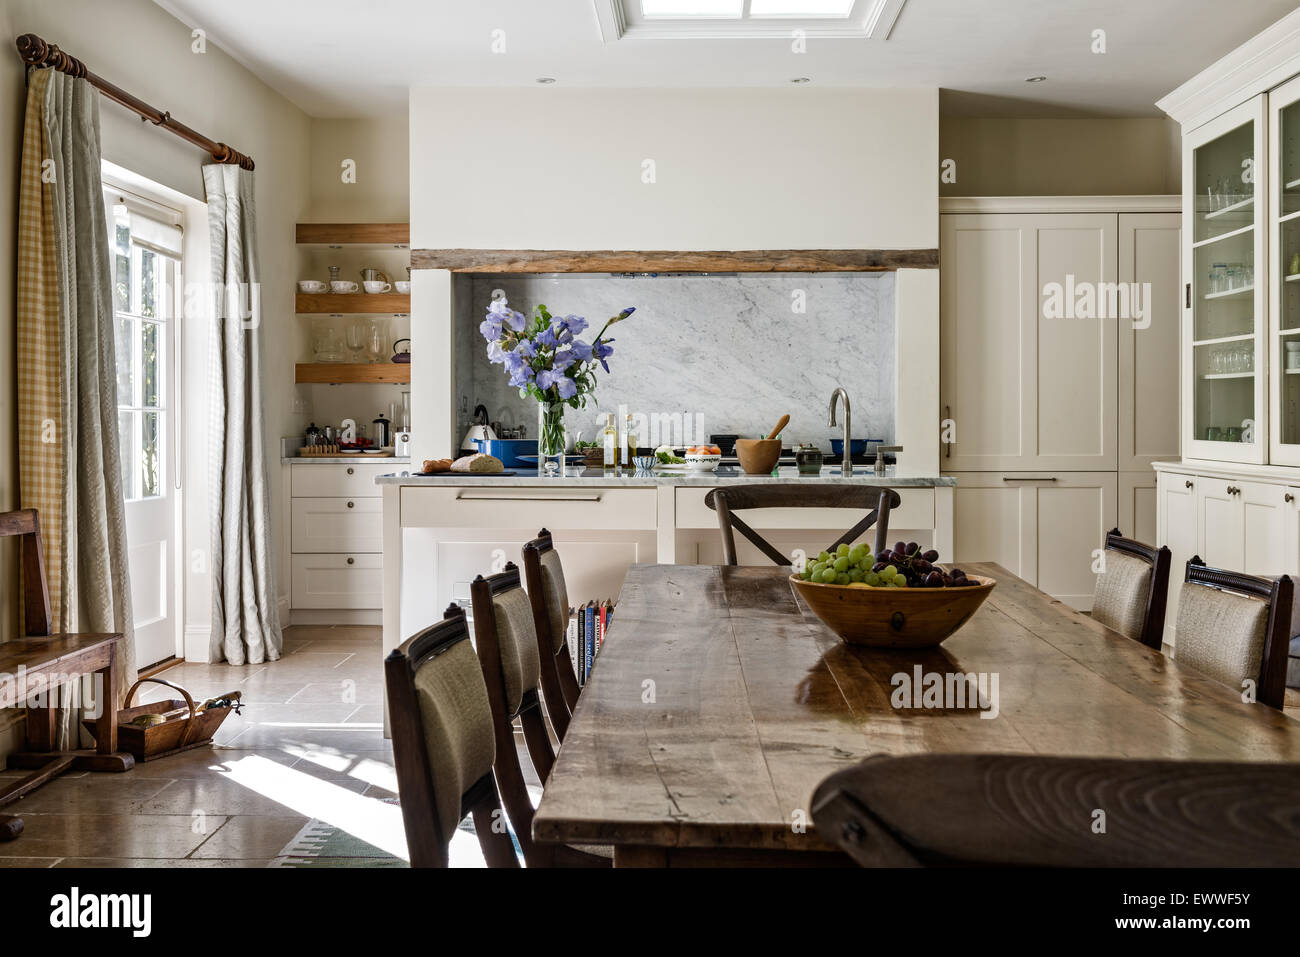 antique kitchen table cheap hotels in negril with dining chairs open plan room limestone flooring